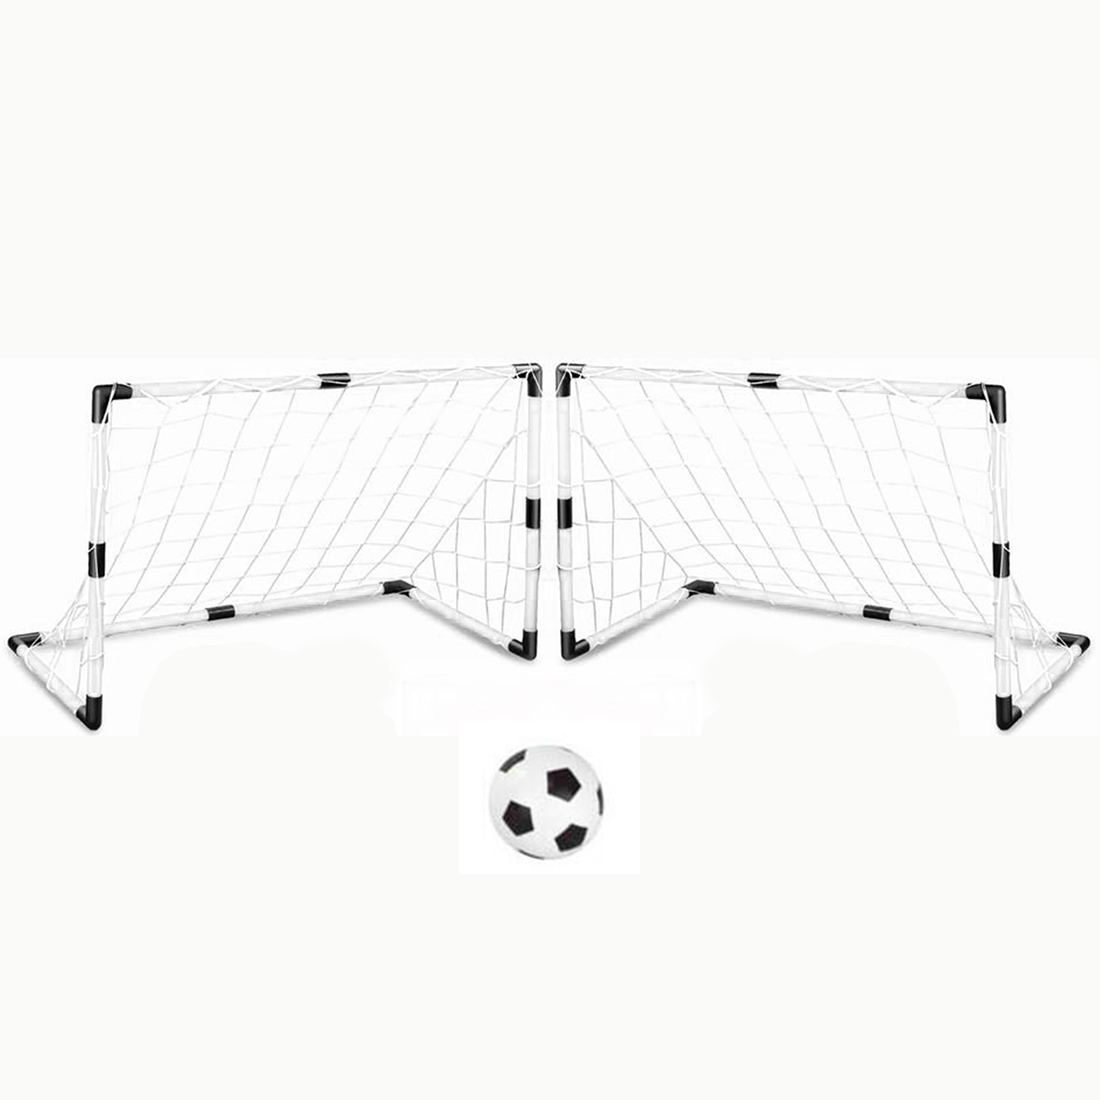 New arrival Set of 2 DIY White Youth Sports Soccer Goals with Soccer Ball and Pump